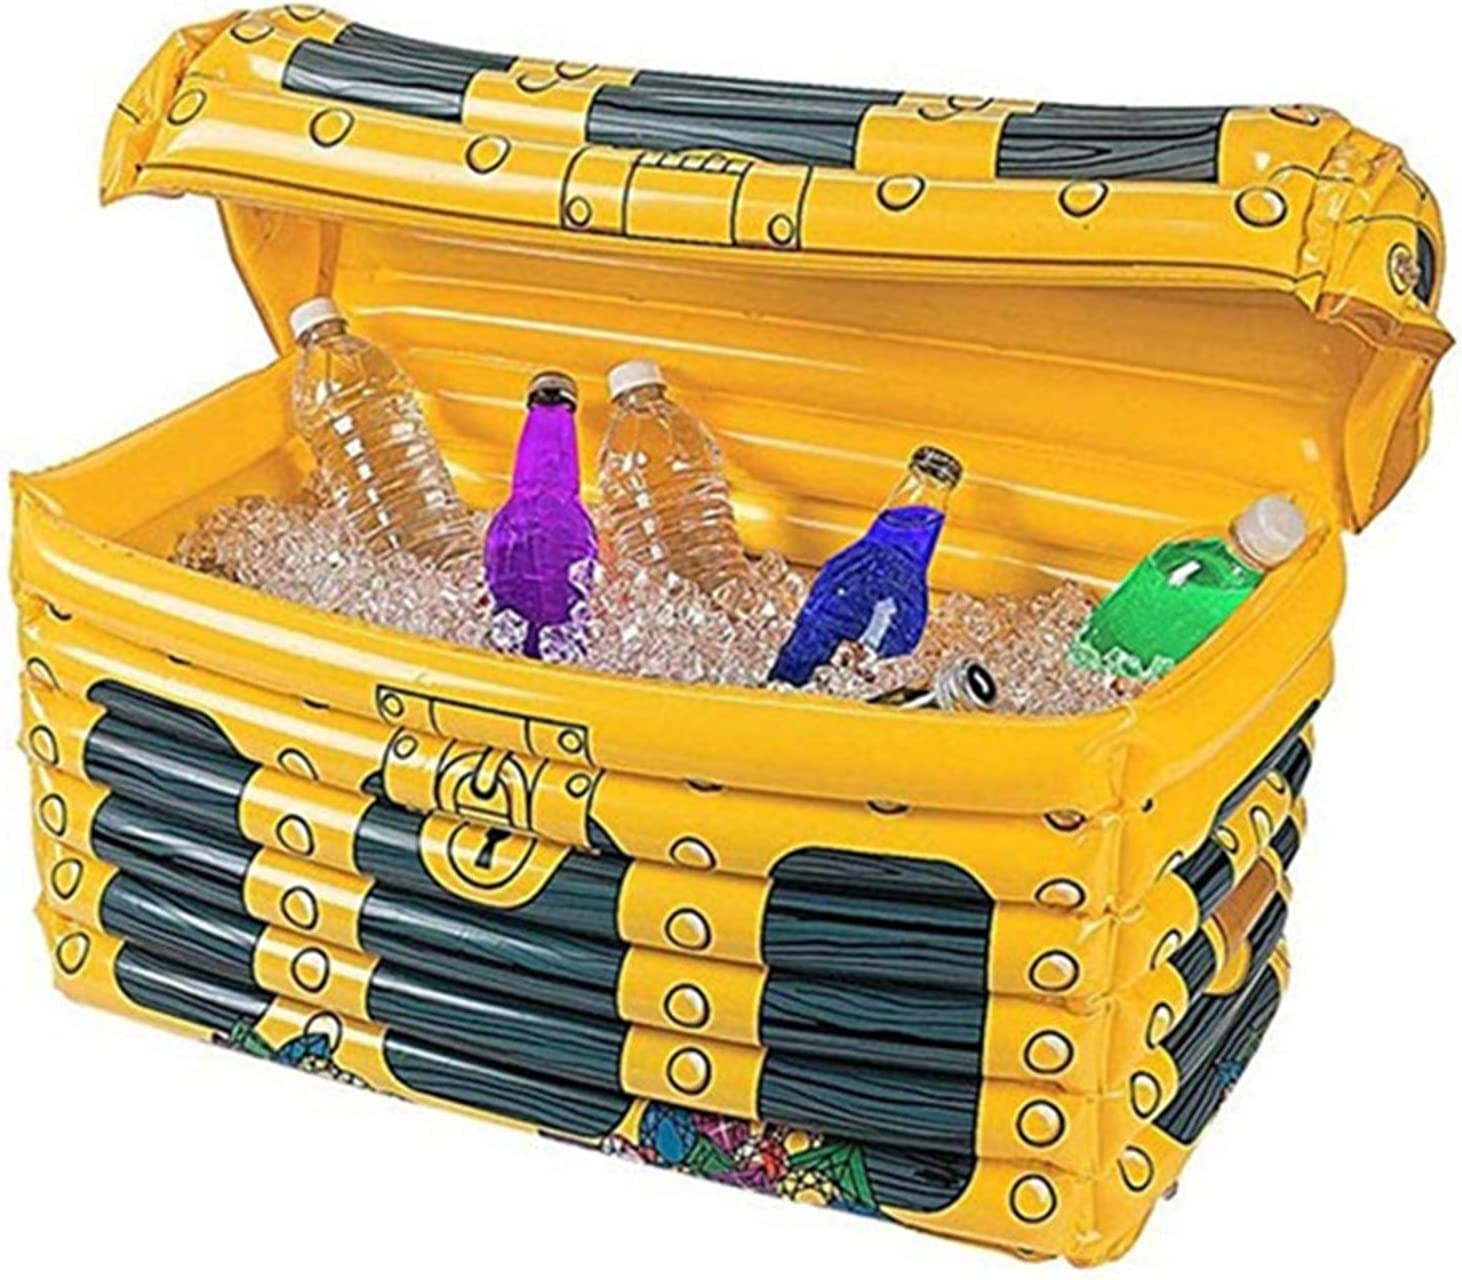 Treasure Box Floating Cooler Inflatable Ice Bucket - Beer Beverage Big Coolers with Cover,Drink Holder Beach Camping Food Tray bar Accessories Halloween Christmas Decor